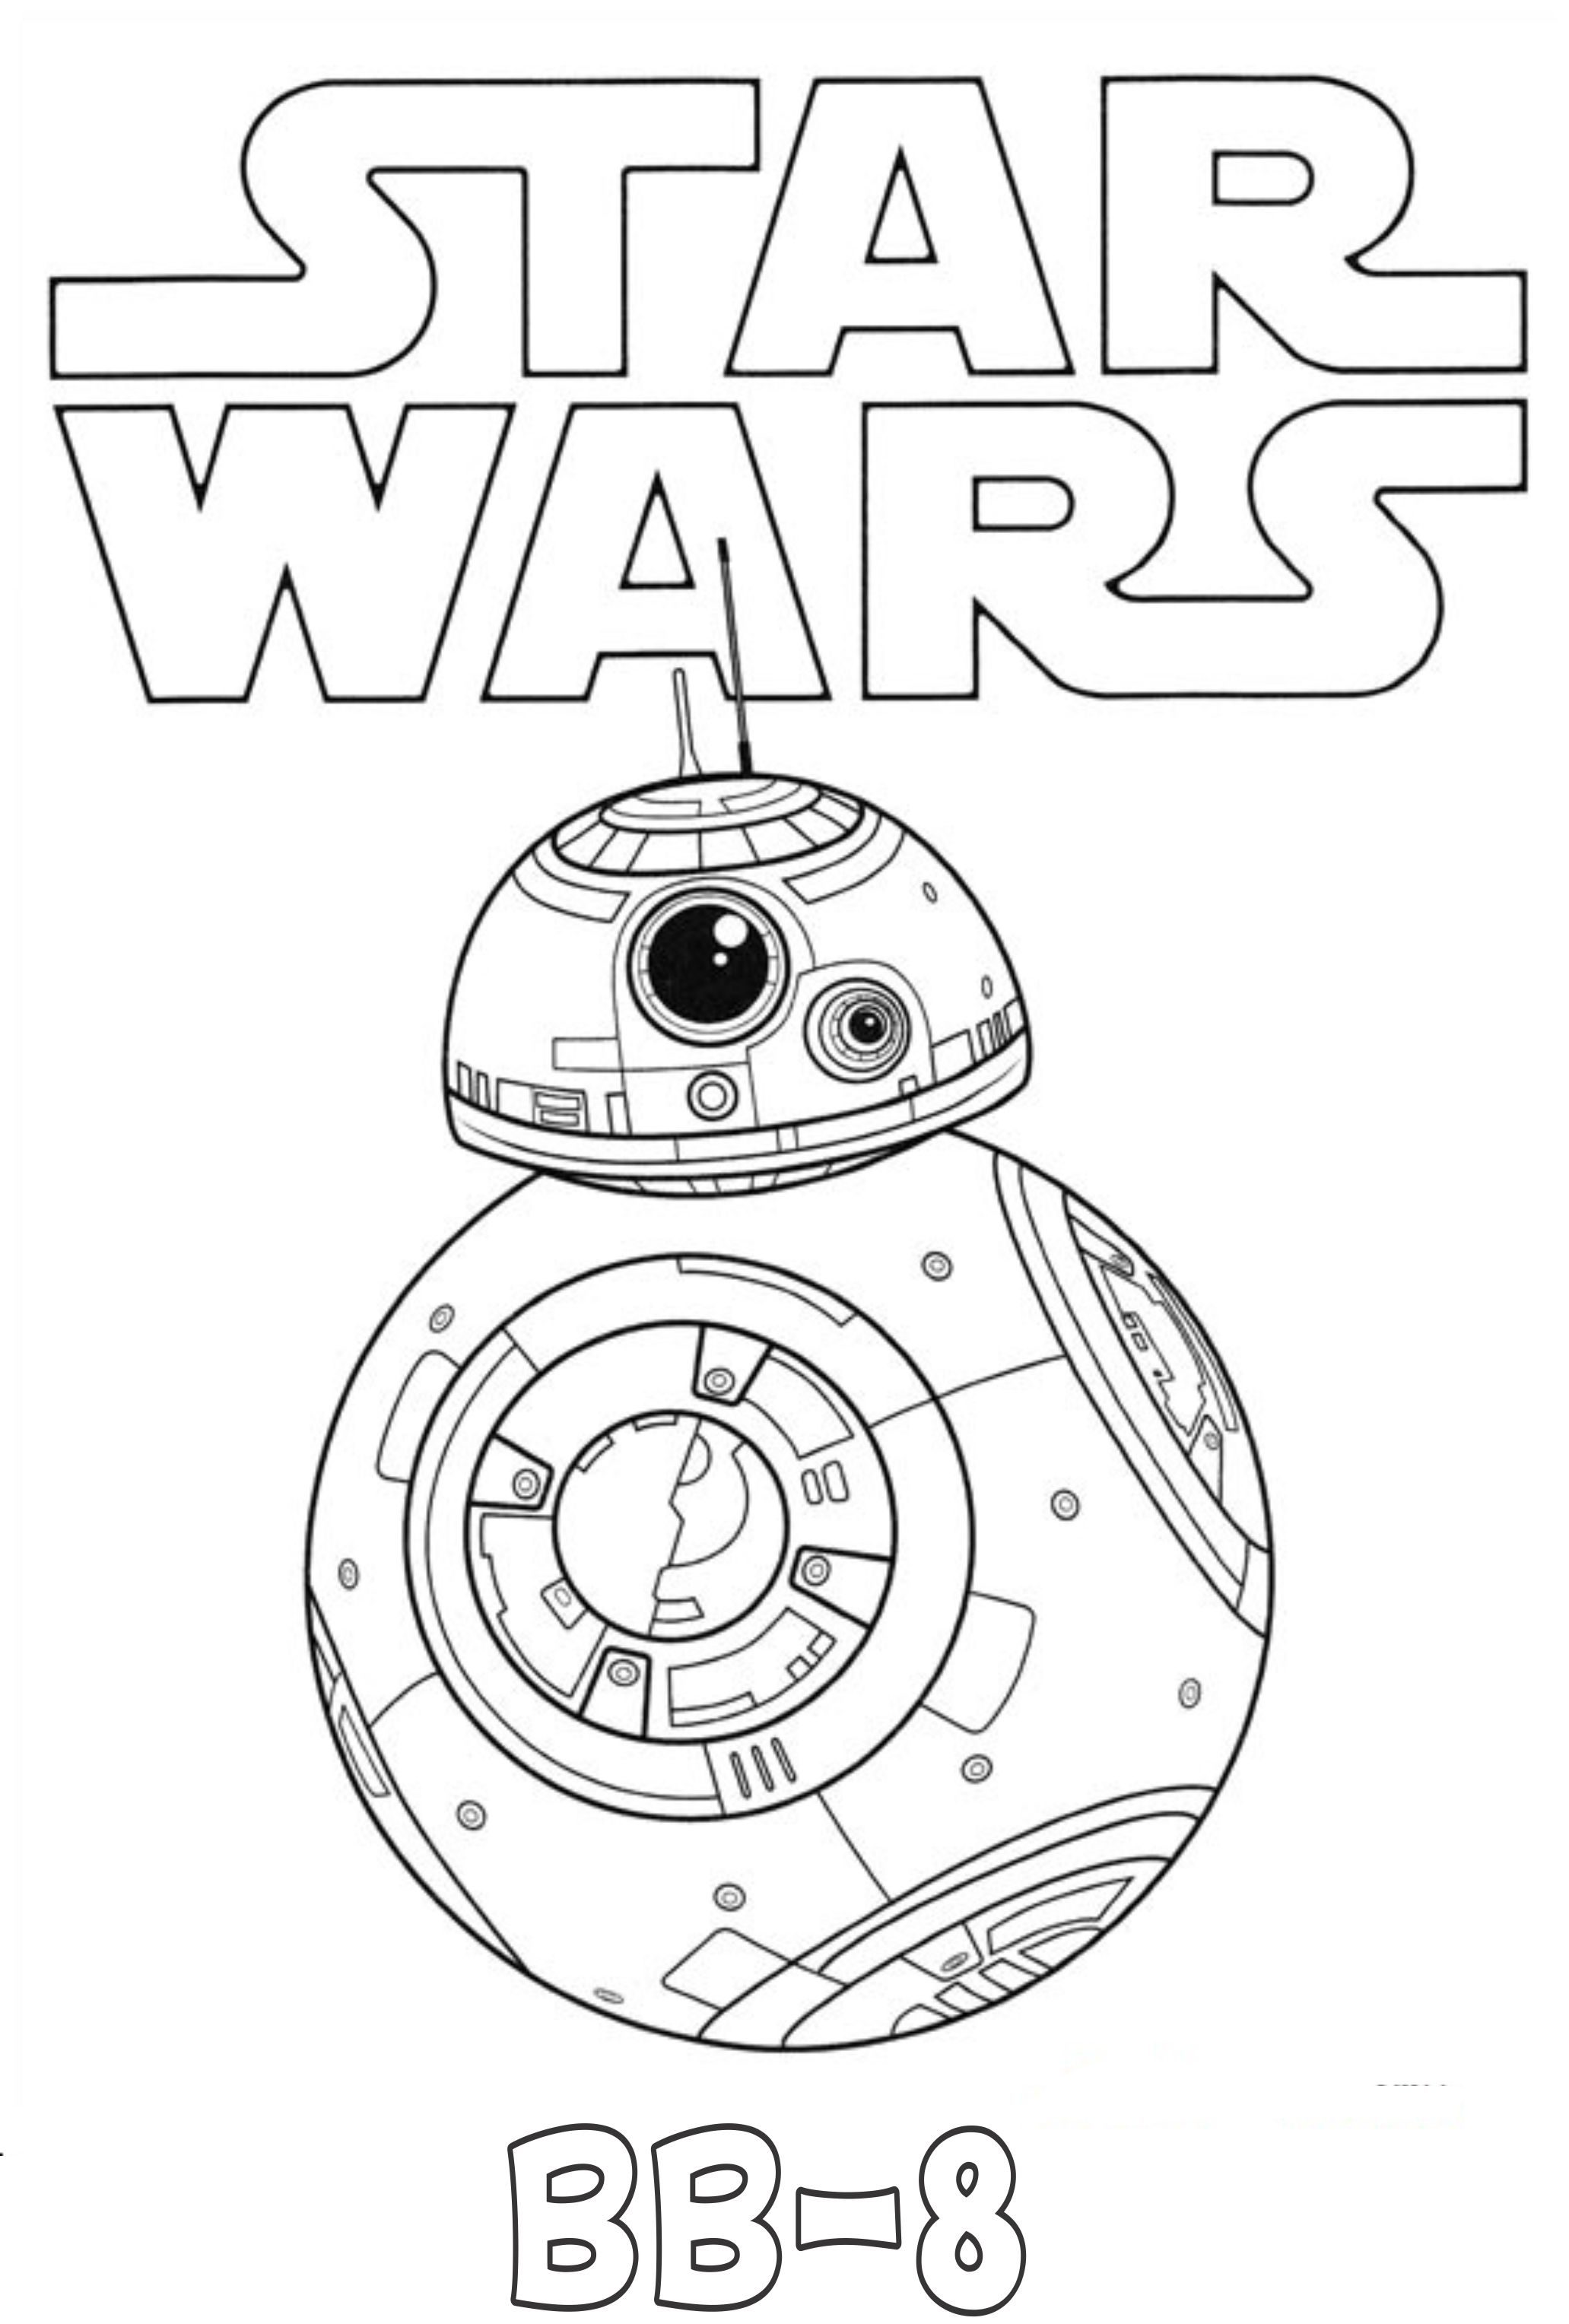 Star Wars Coloring Pages Free Coloring Pages Printable